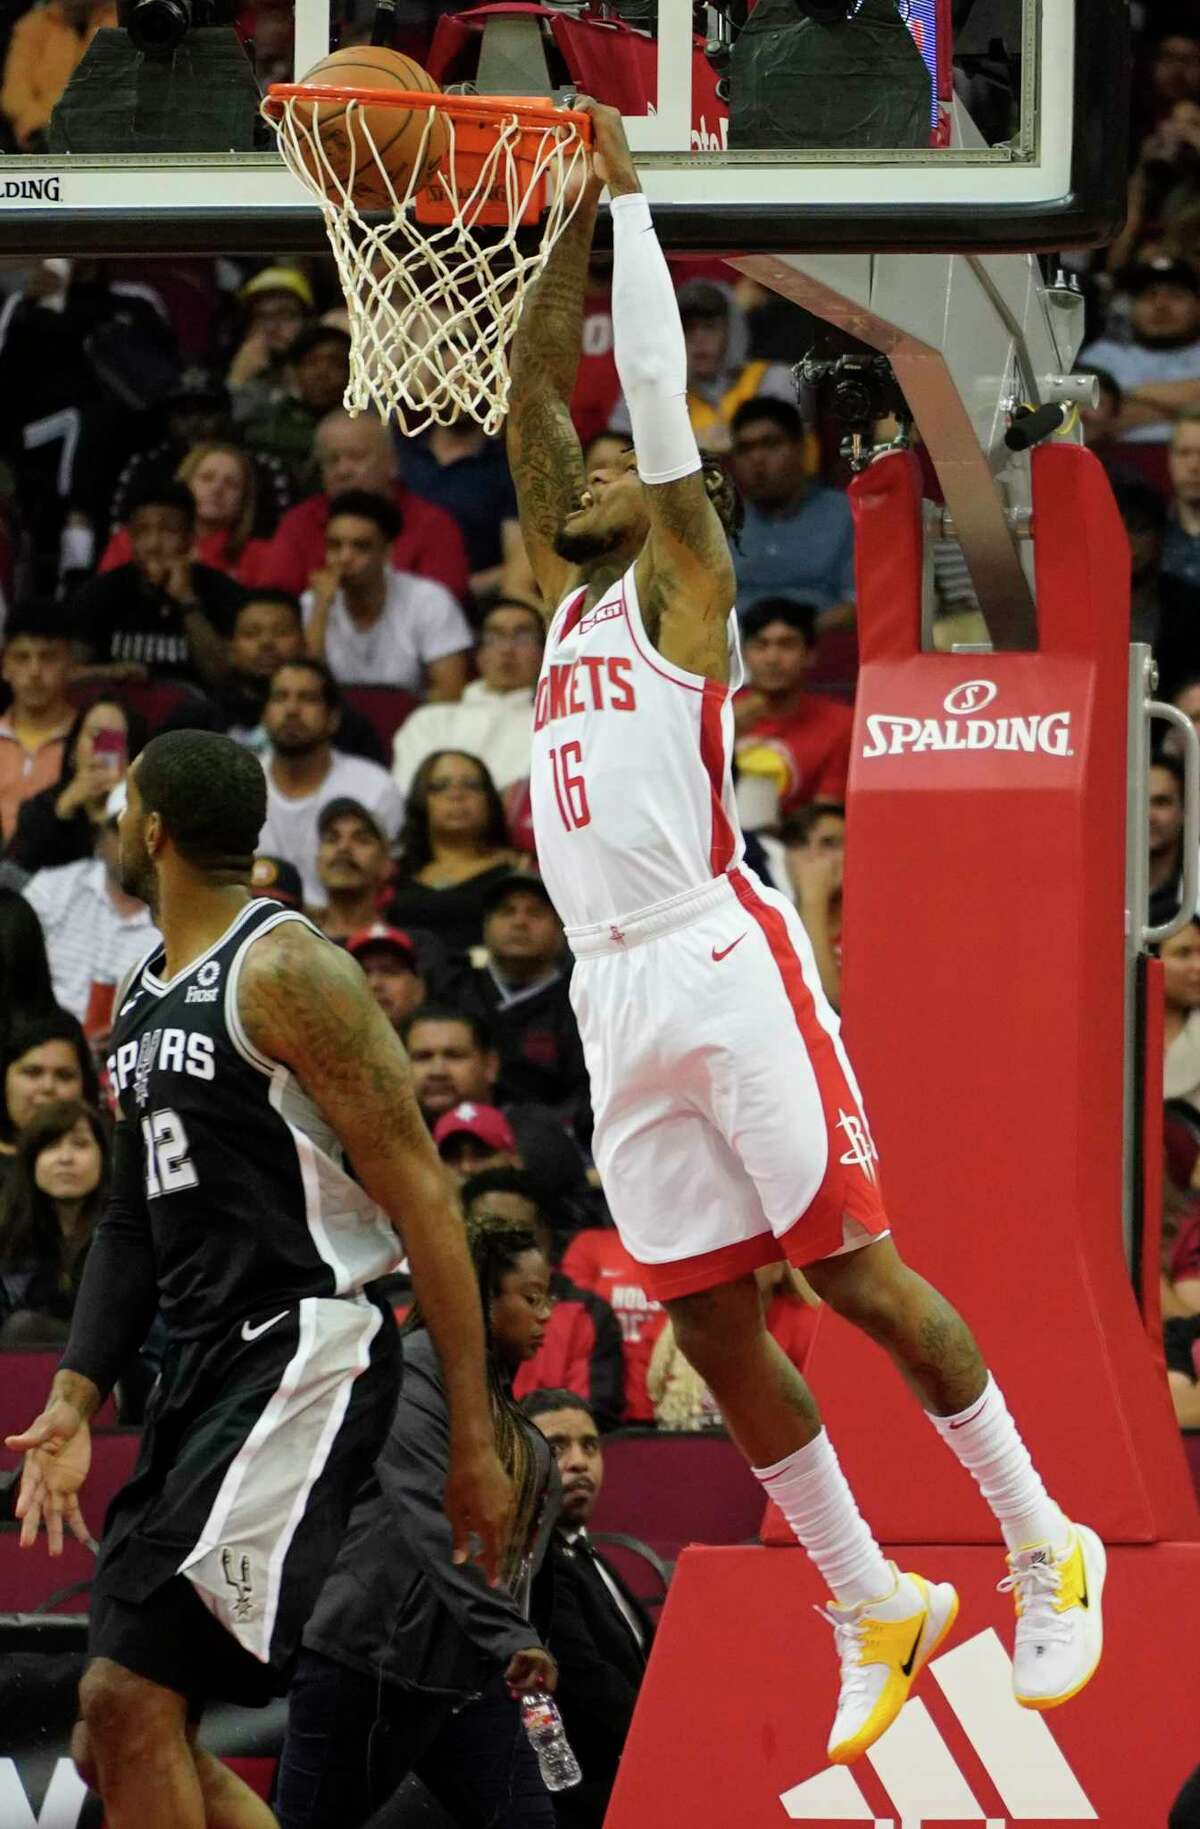 Houston Rockets Ben McLemore dunks the ball past San Antonio Spurs LaMarcus Aldridge during the first half of NBA game at Toyota Center Wednesday, Oct. 16, 2019, in Houston.